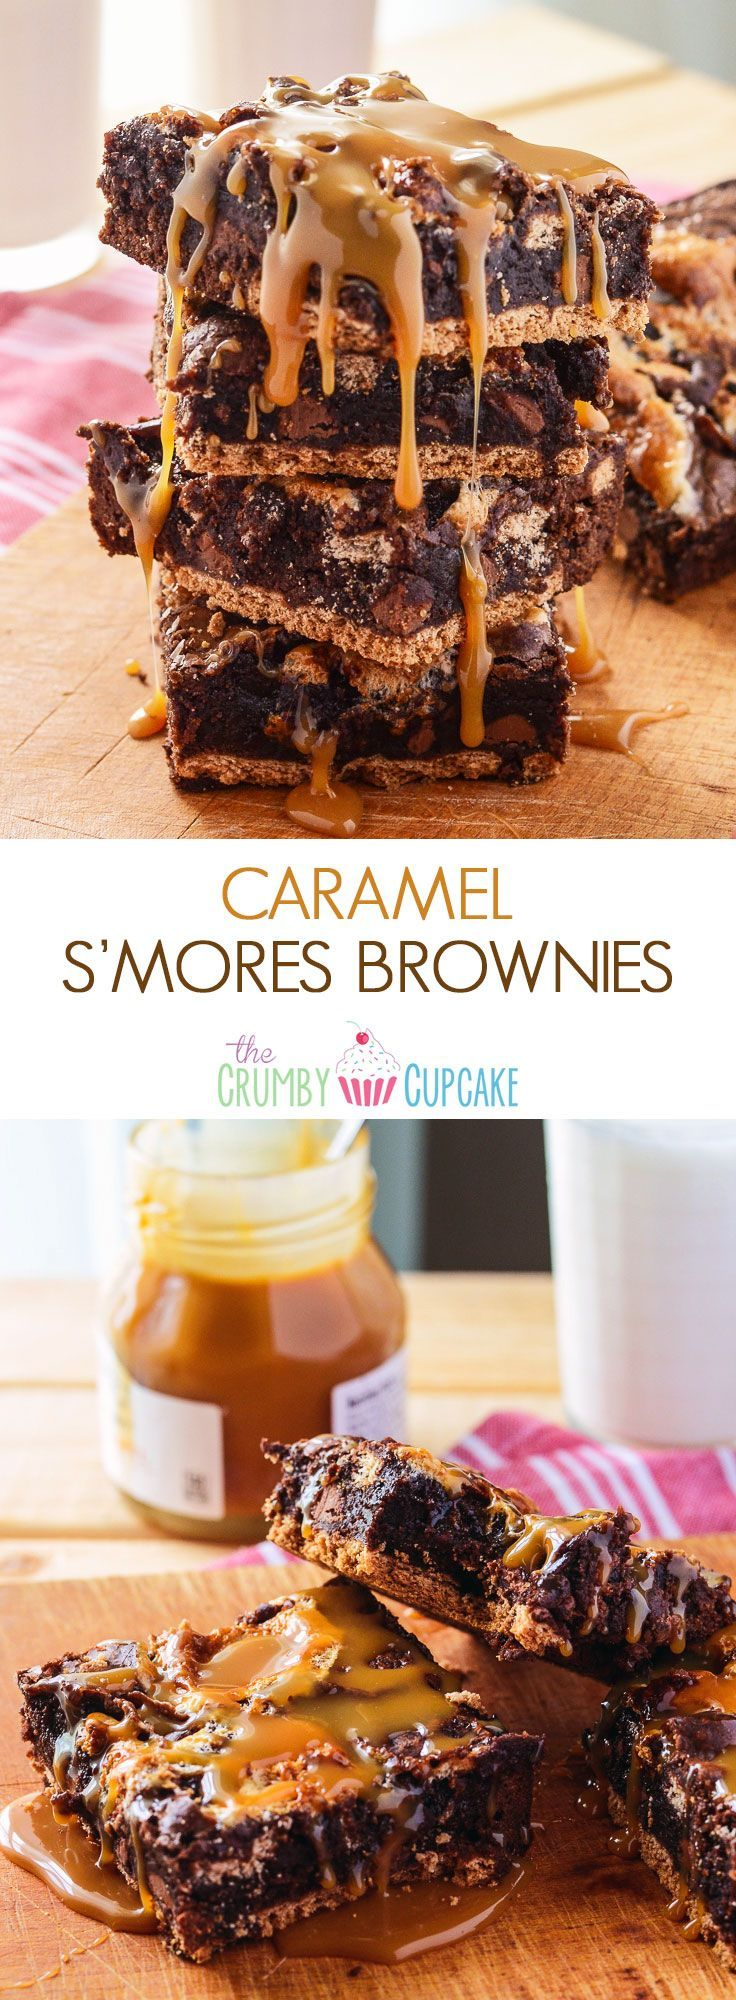 mores Brownies | Amazingly easy gooey s'mores brownies, stuffed ...